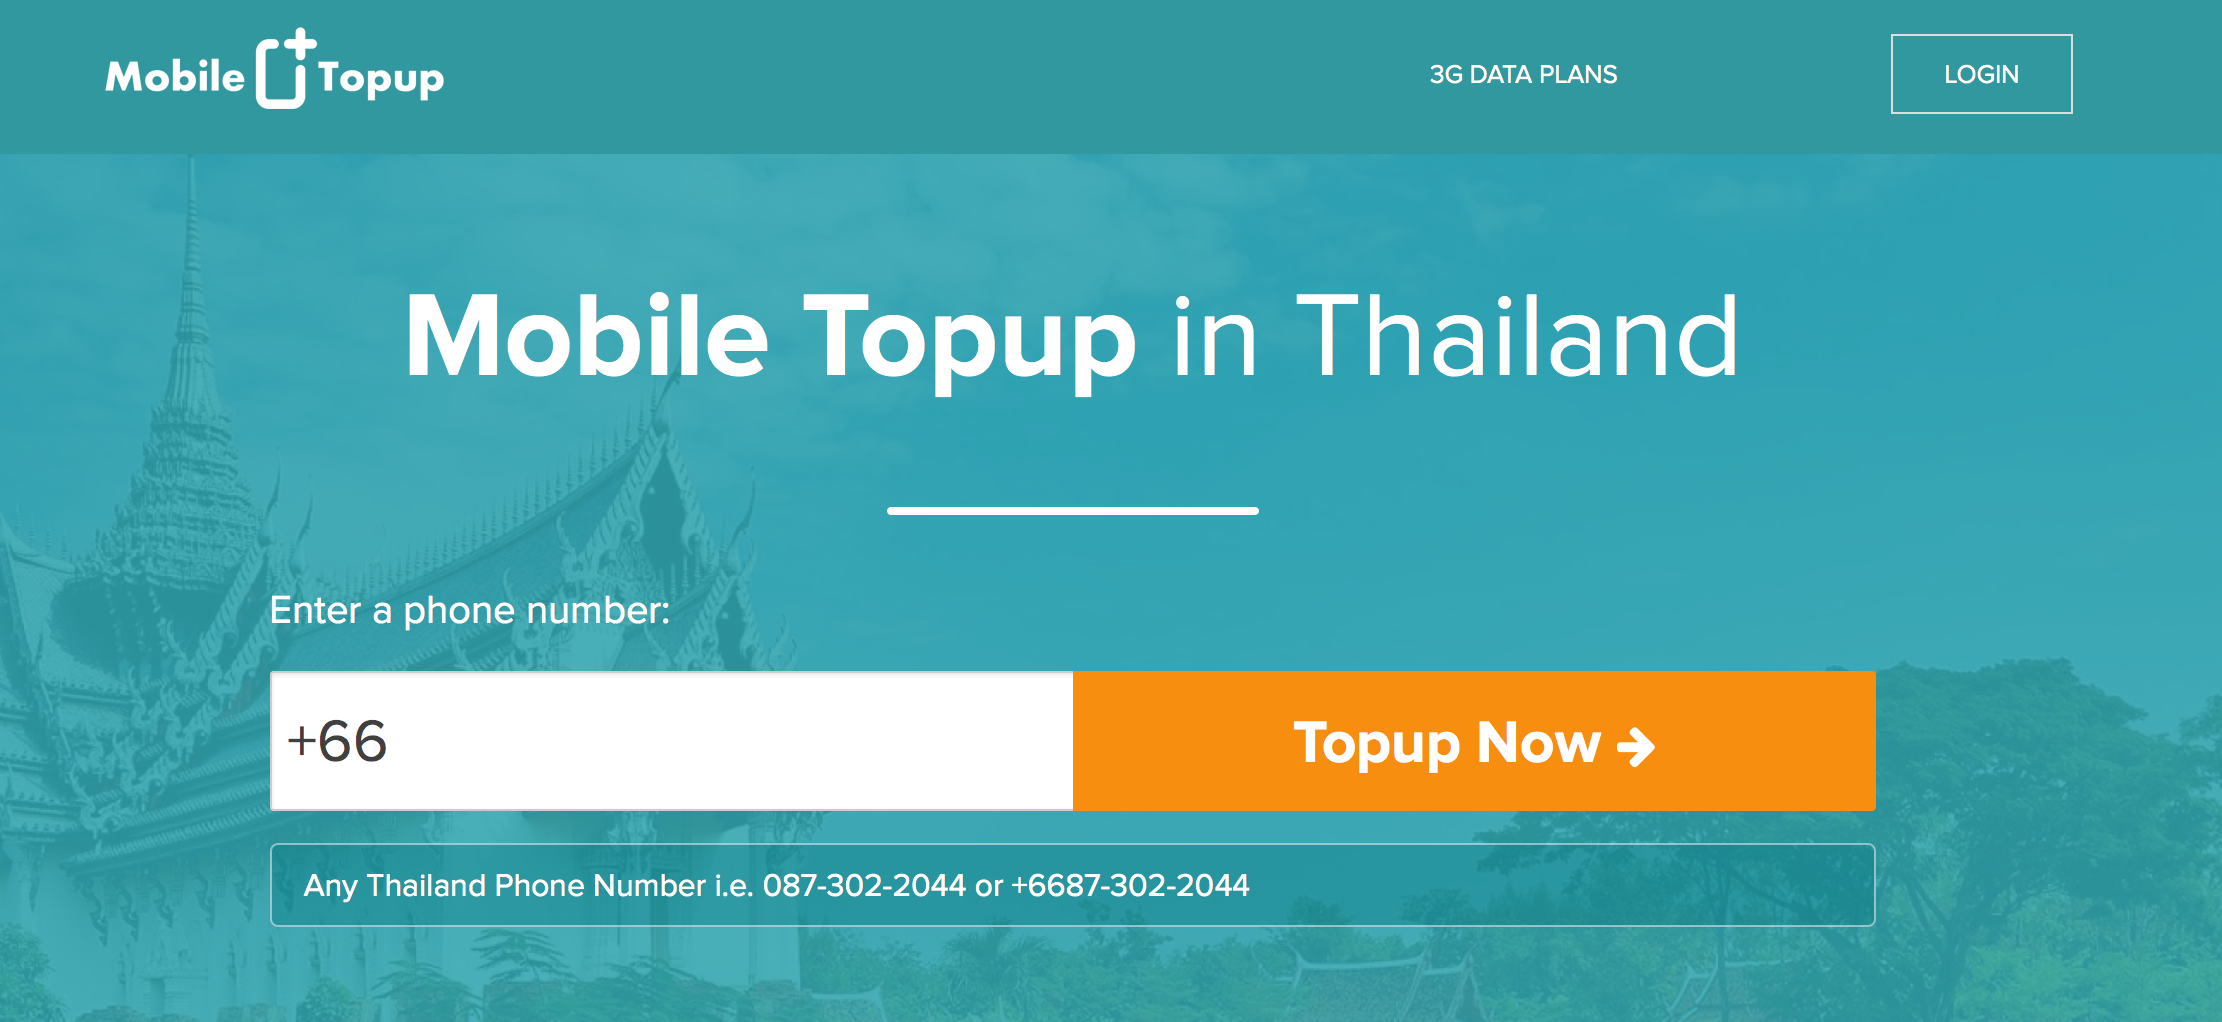 mobile-topup-in-thailand-mobiles-internet.png